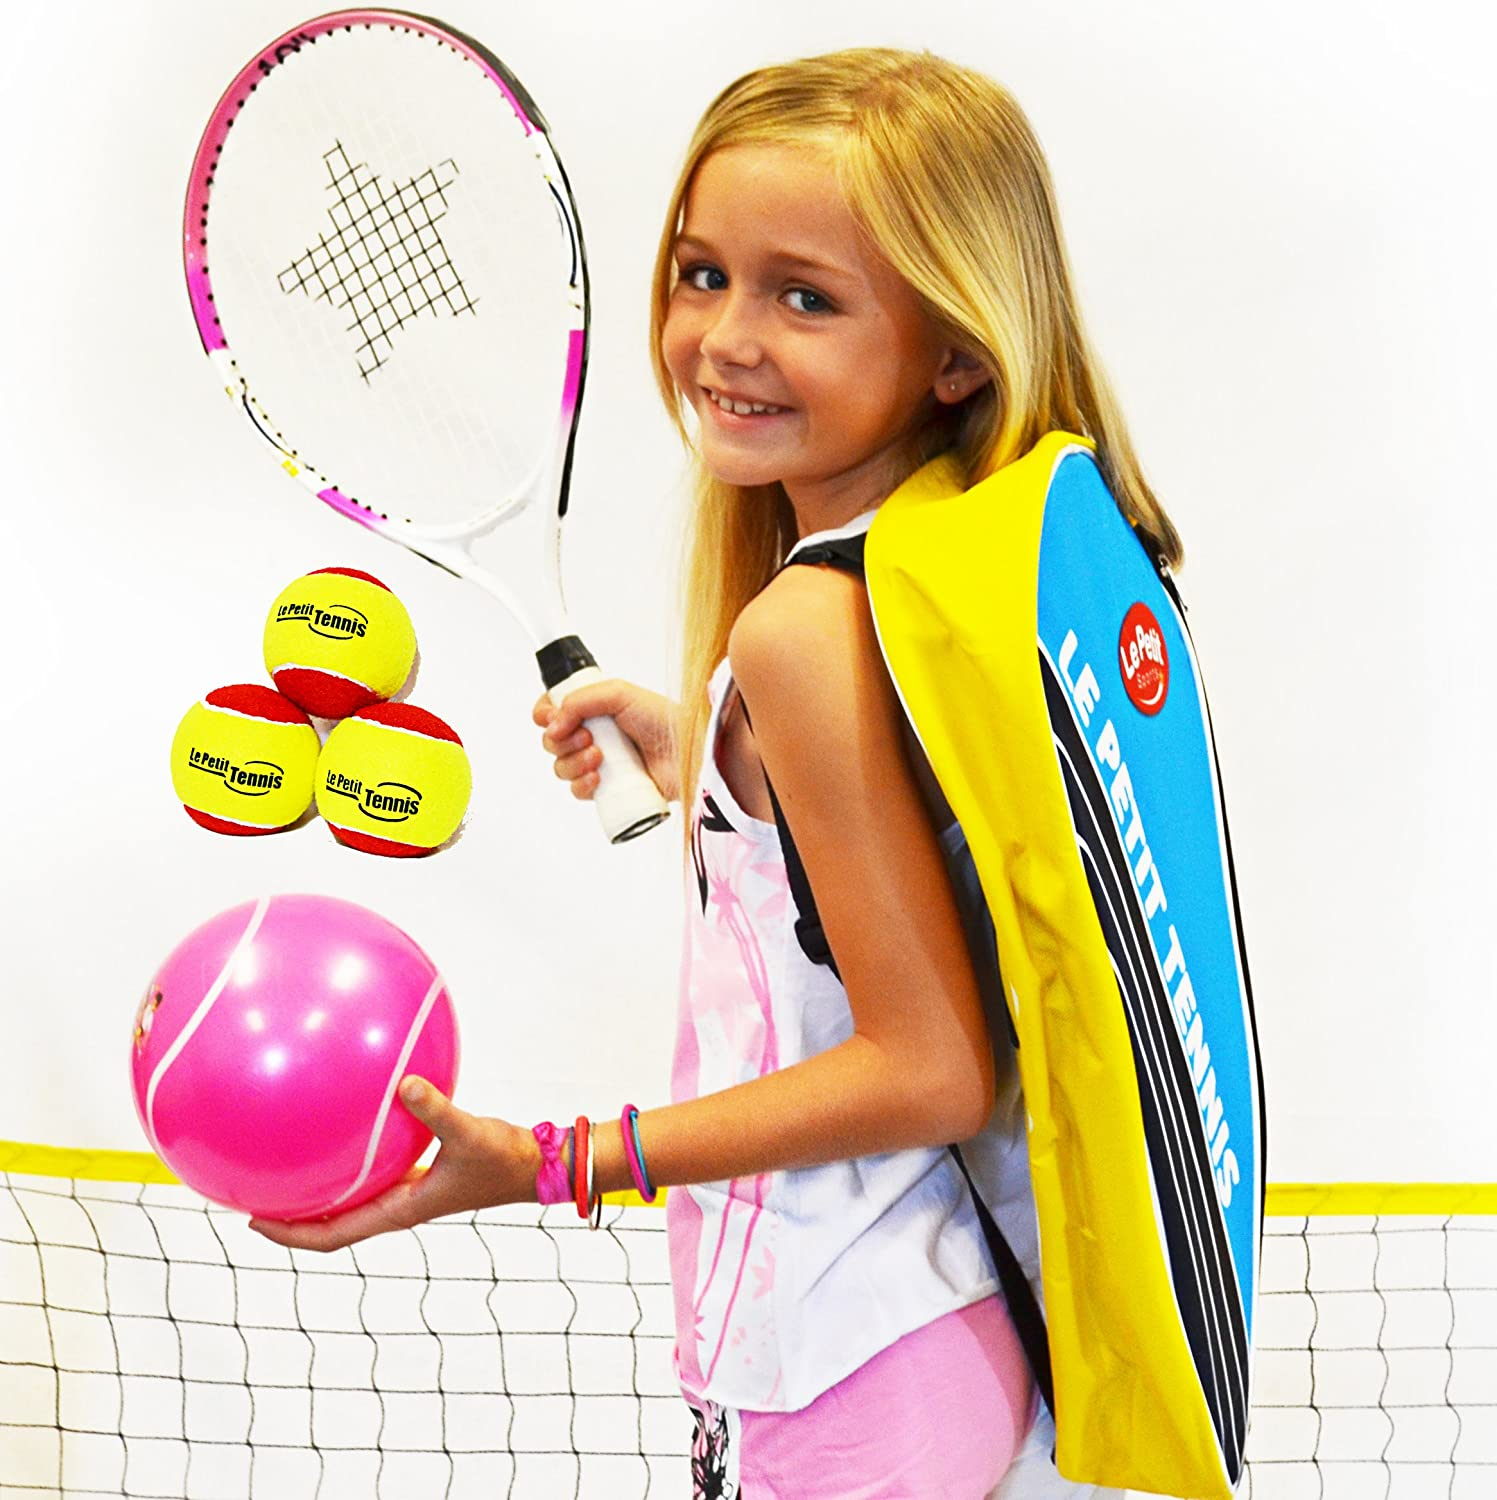 Le Petit Tennis - 17 and 19 in Junior TENNIS TO GO Kit PINK - Includes 1 Tennis Backpack thermo bag, 1 Racquet/racket, 3 Quick Start stage 3 Tennis Balls, 1 tennis net of 9ft and 1 inflatable My First Tennis Ball, 17 Inch Racket (Ages 2 to 4 or 30 to 37 i